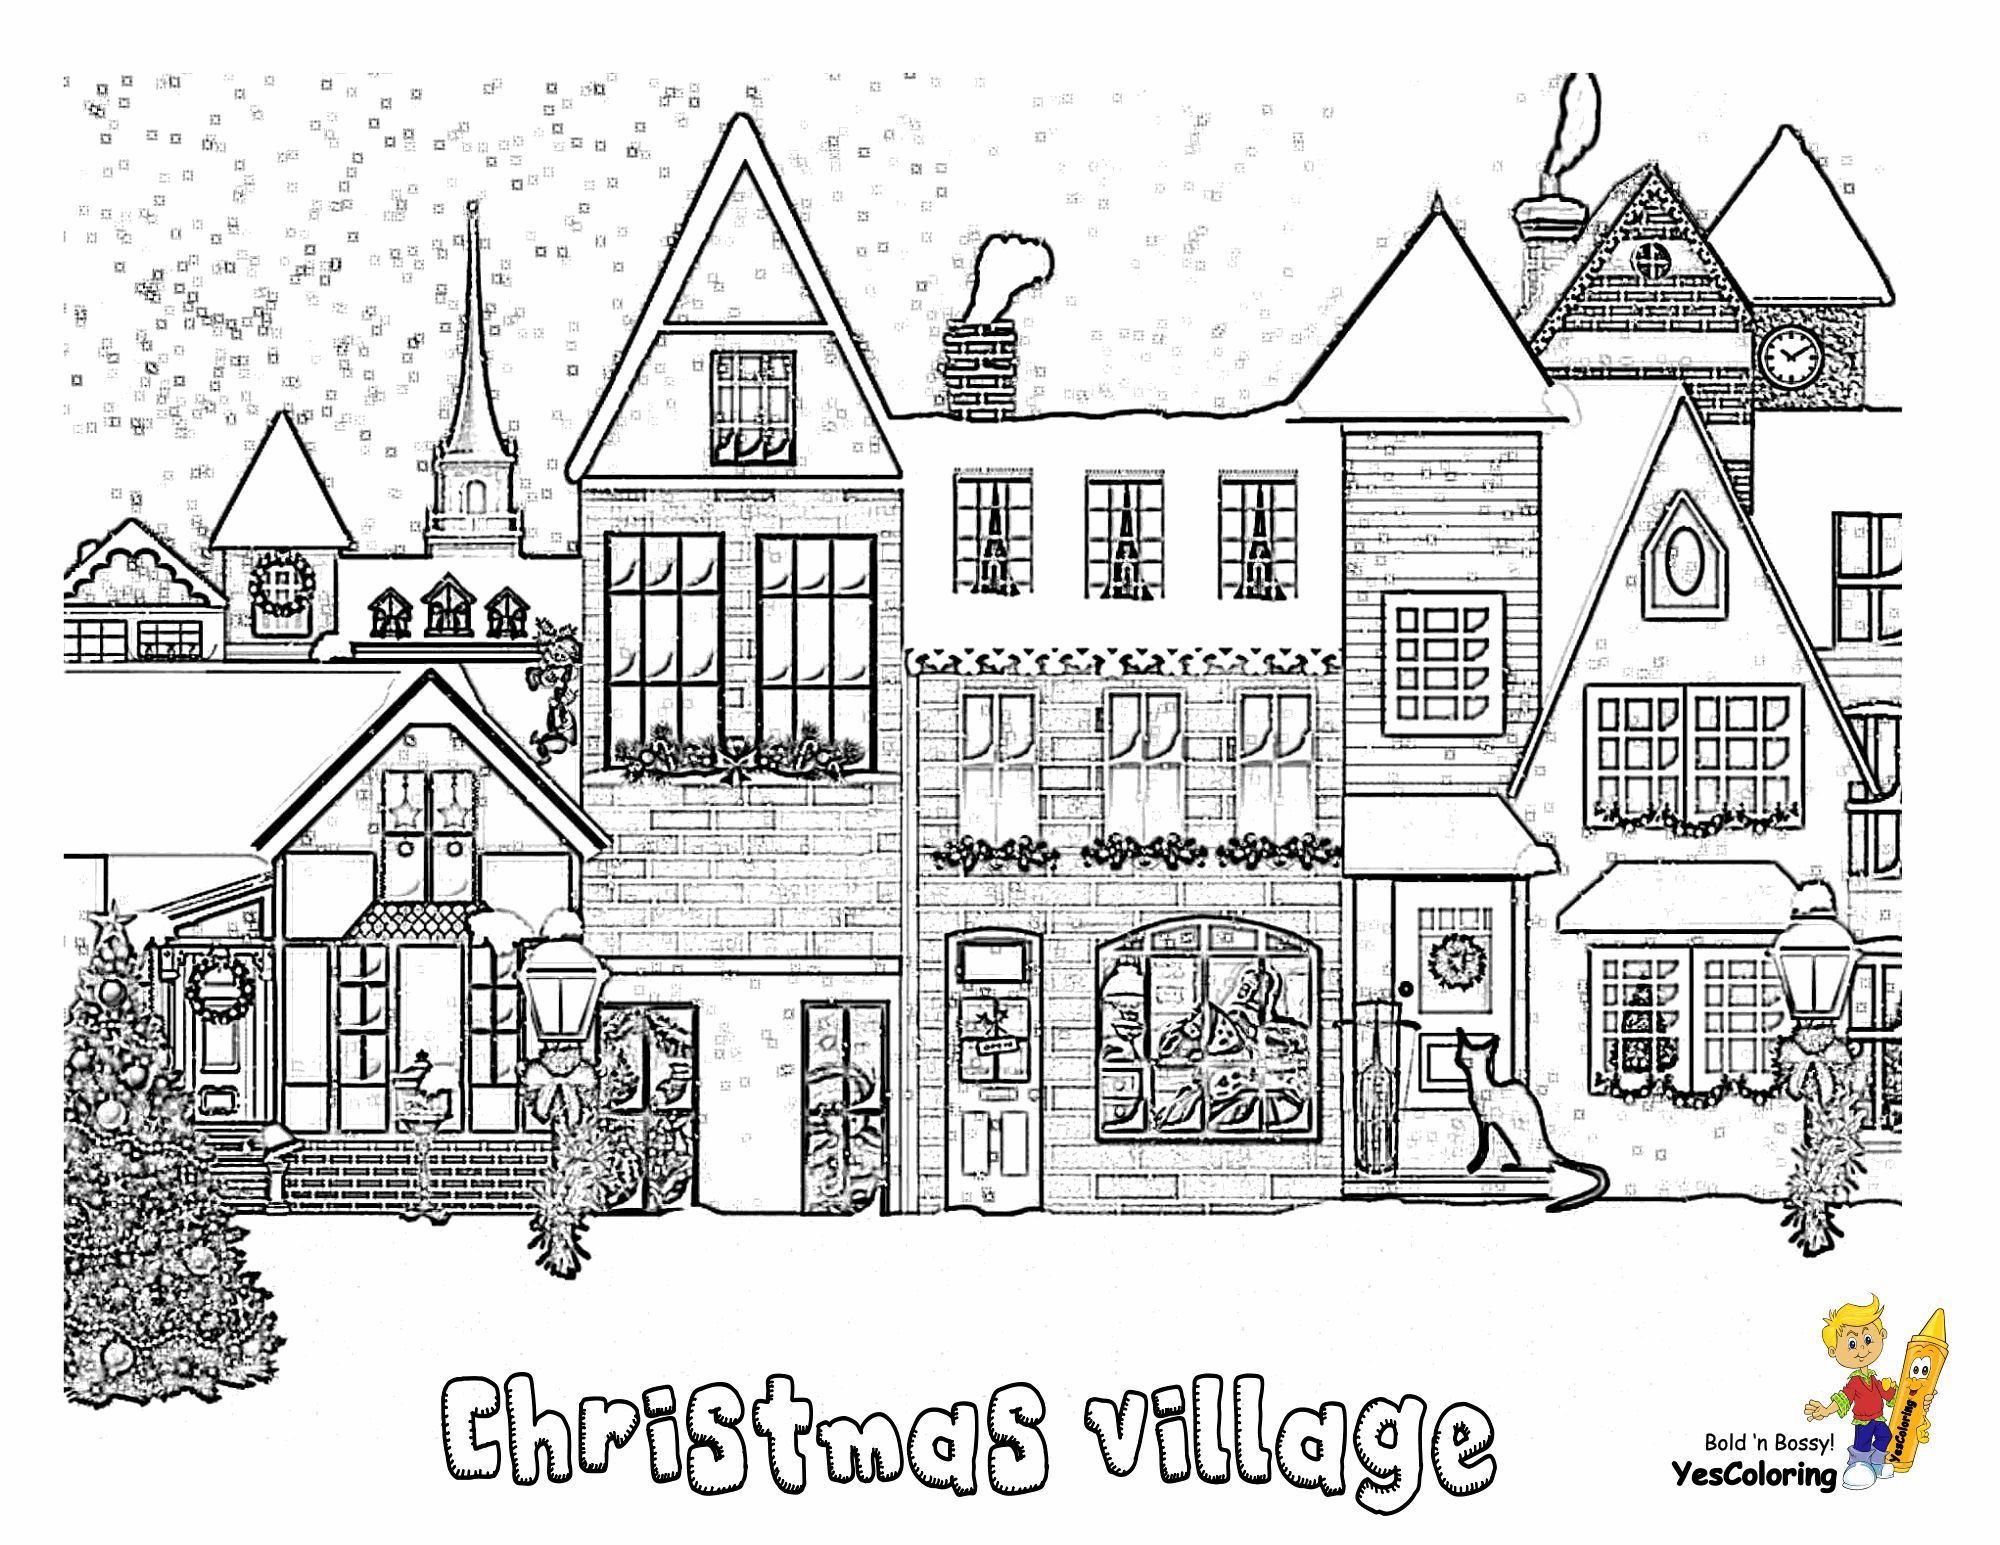 Print Out This Christmas Village Coloring Page Wow Tell Other Co Christmas Tree Coloring Page Free Christmas Coloring Pages Merry Christmas Coloring Pages